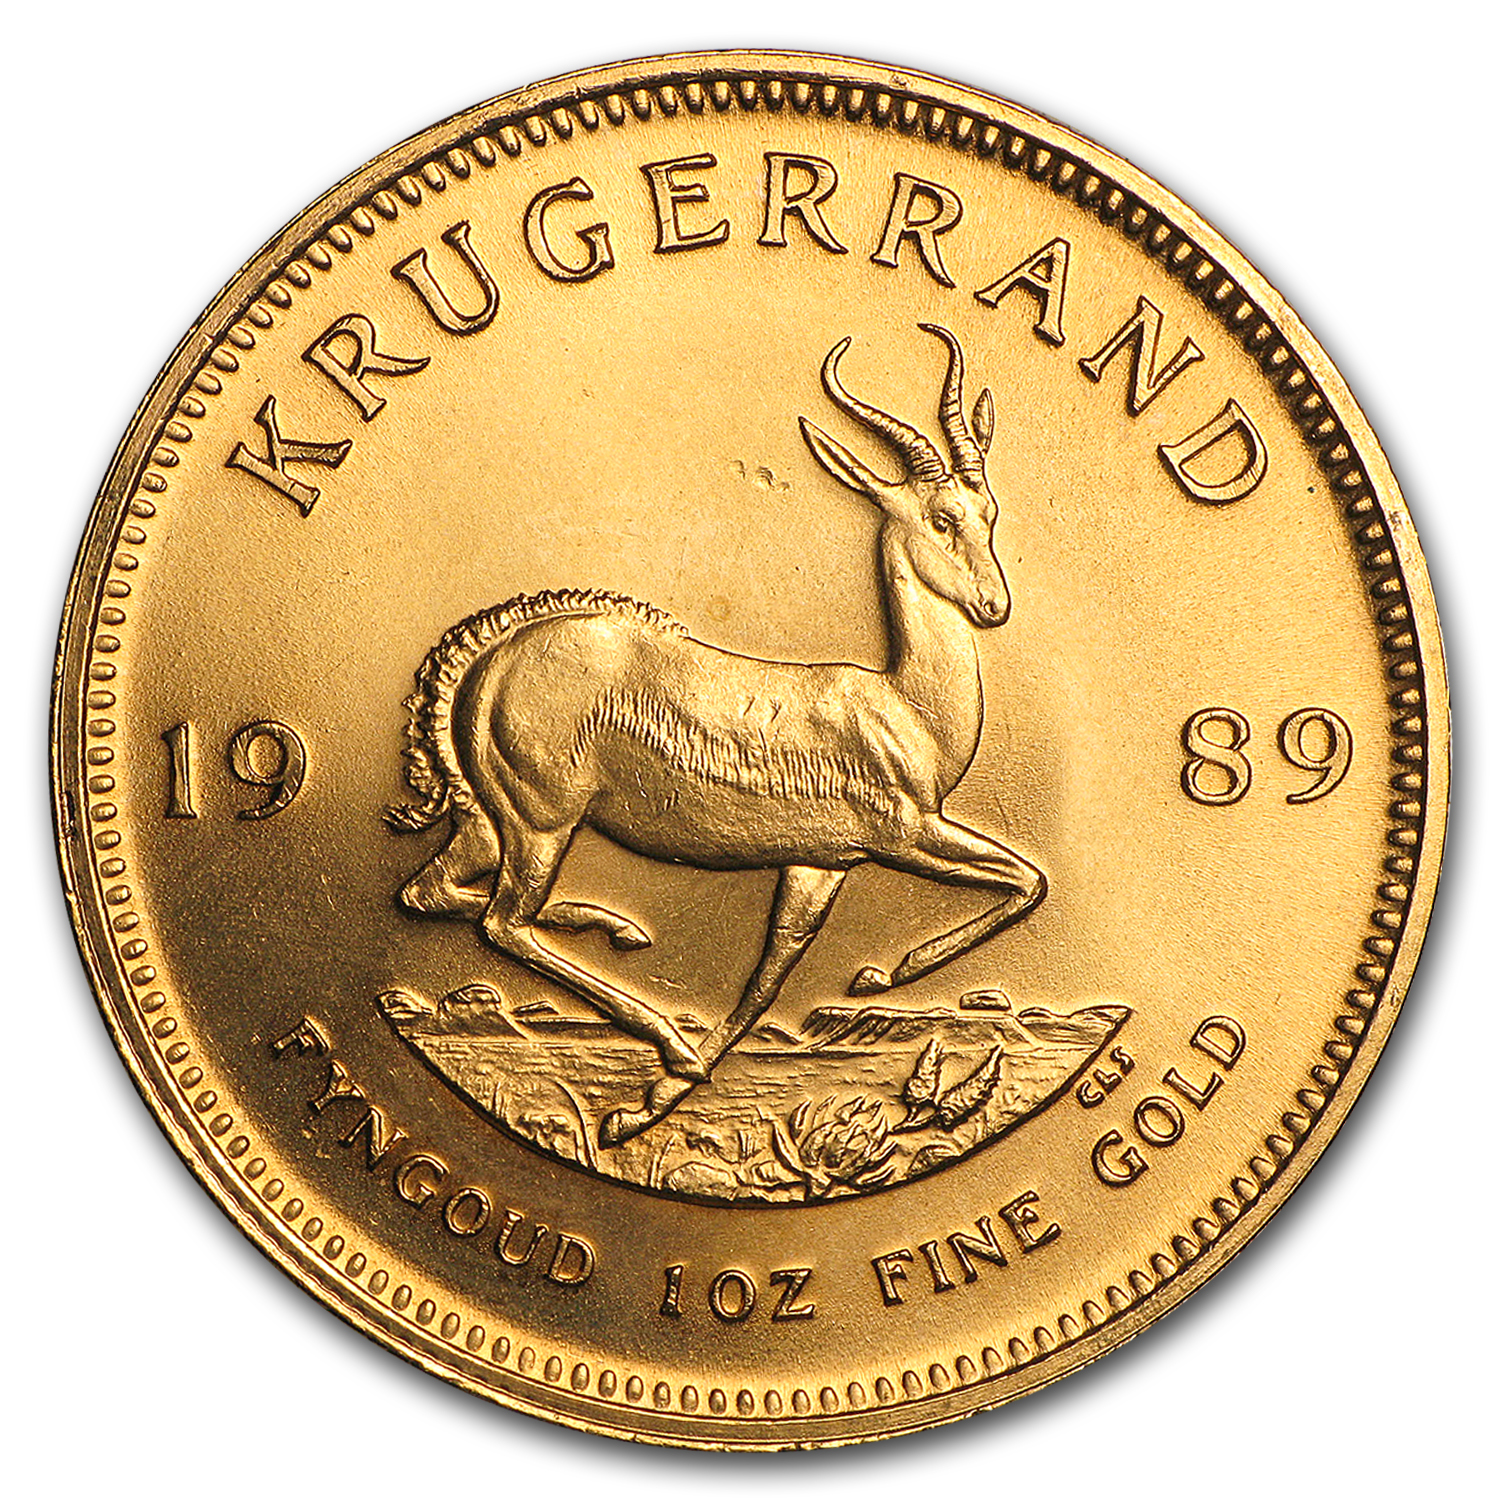 1989 1 oz Gold South African Krugerrand